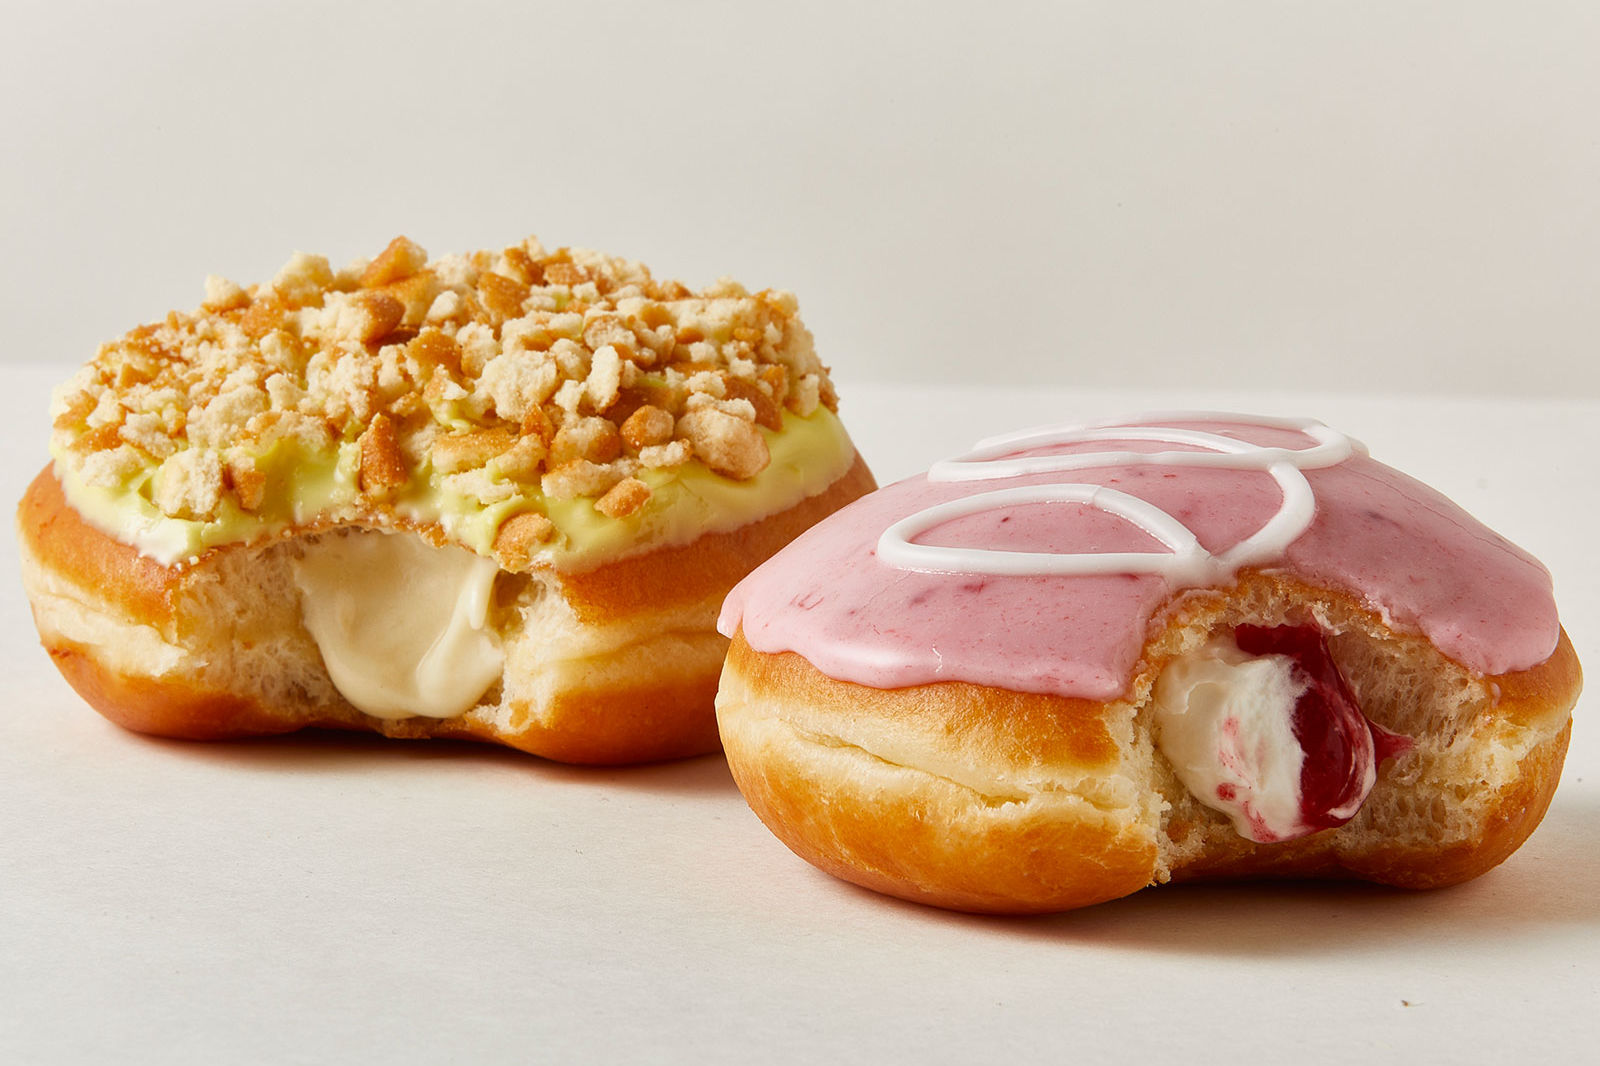 Krispy Kreme's Newest Doughnut Flavors Are...